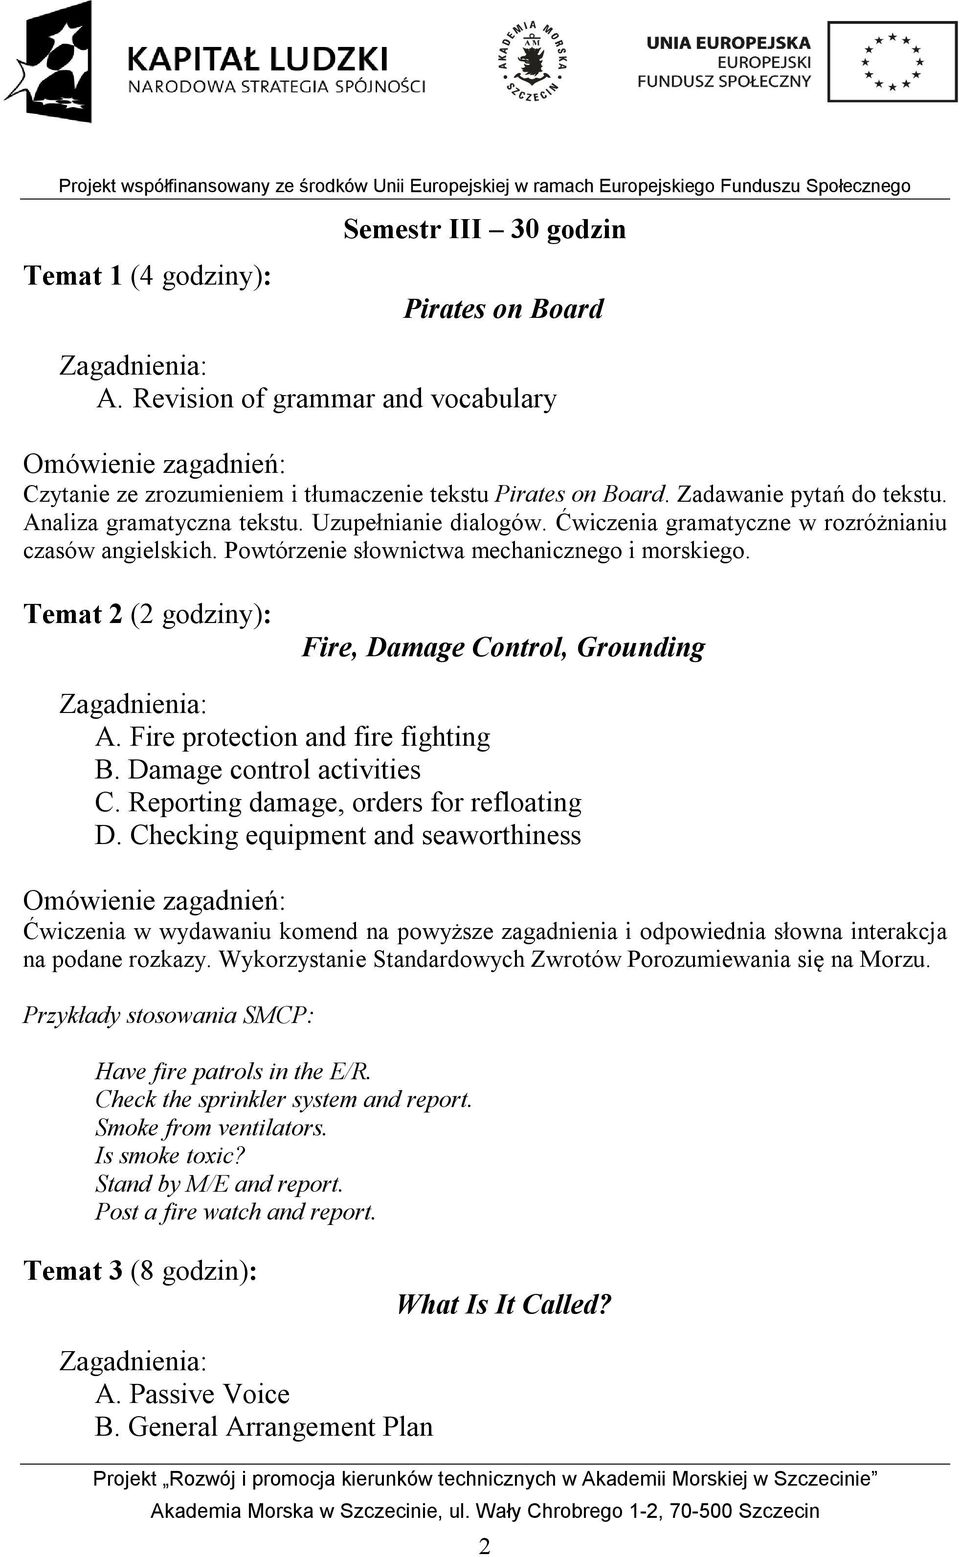 Temat 2 (2 godziny): Fire, Damage Control, Grounding A. Fire protection and fire fighting B. Damage control activities C. Reporting damage, orders for refloating D.